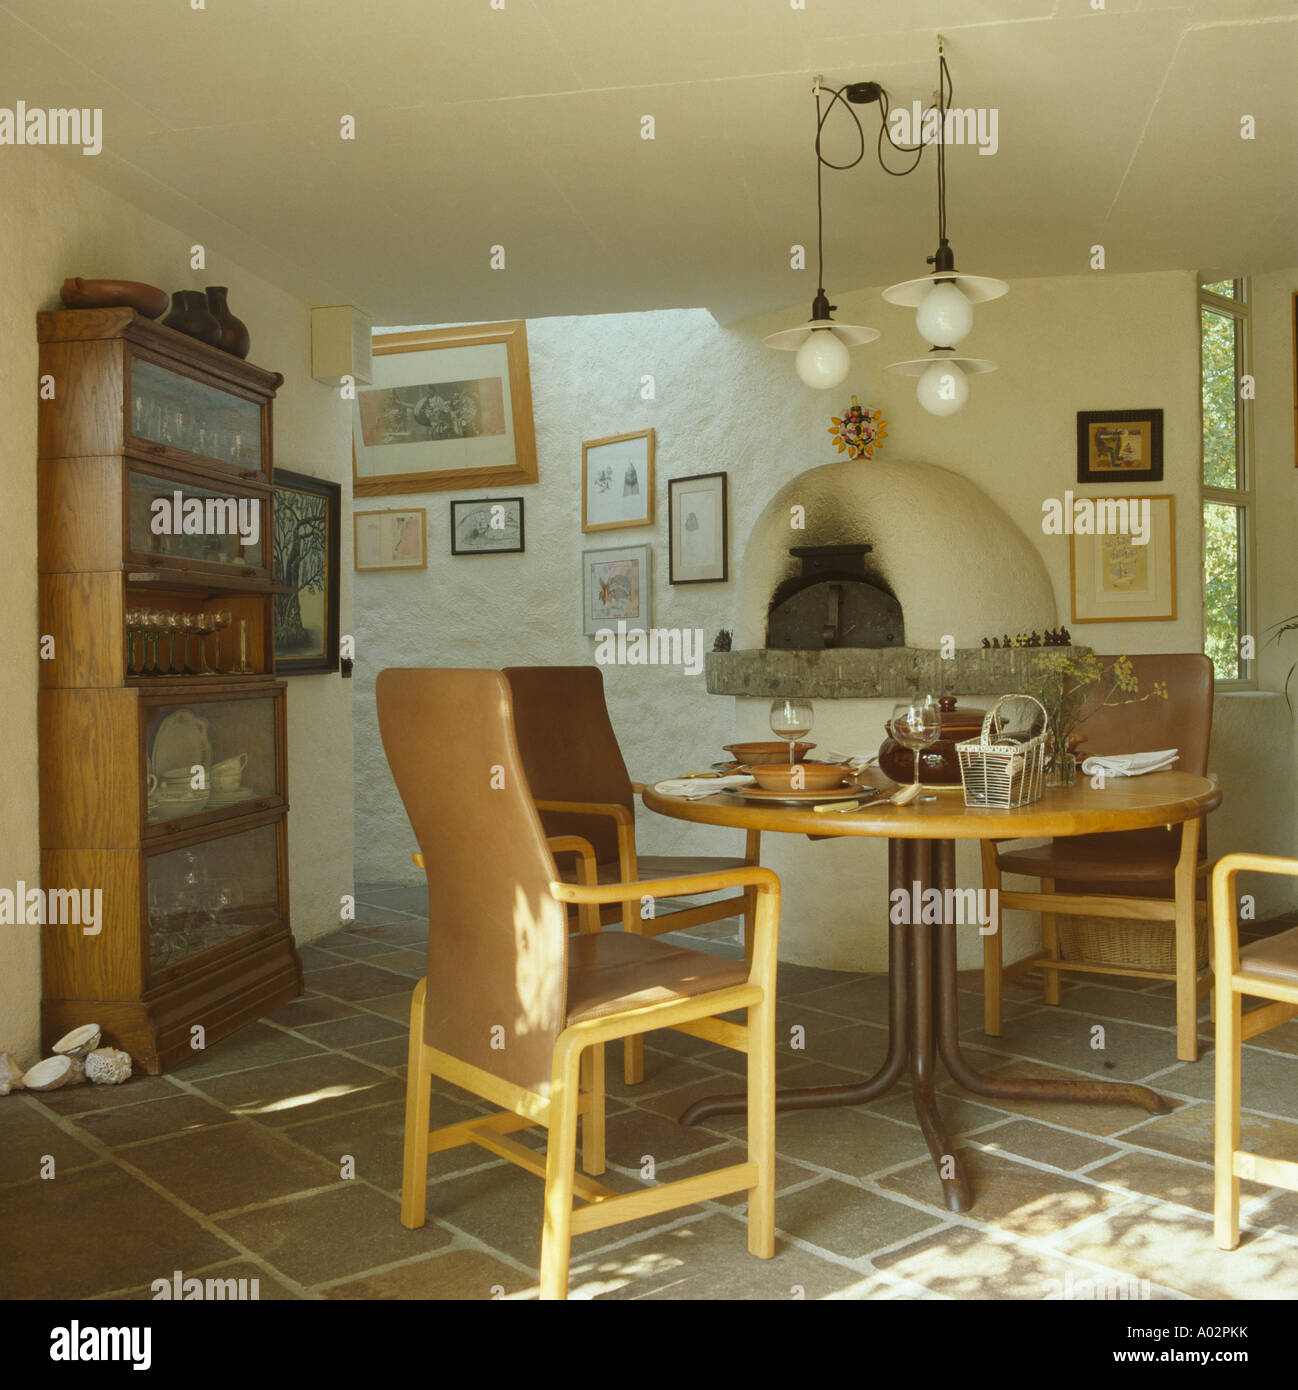 Modern chairs and table on paved floor in traditional Swedish country cottage - Stock Image